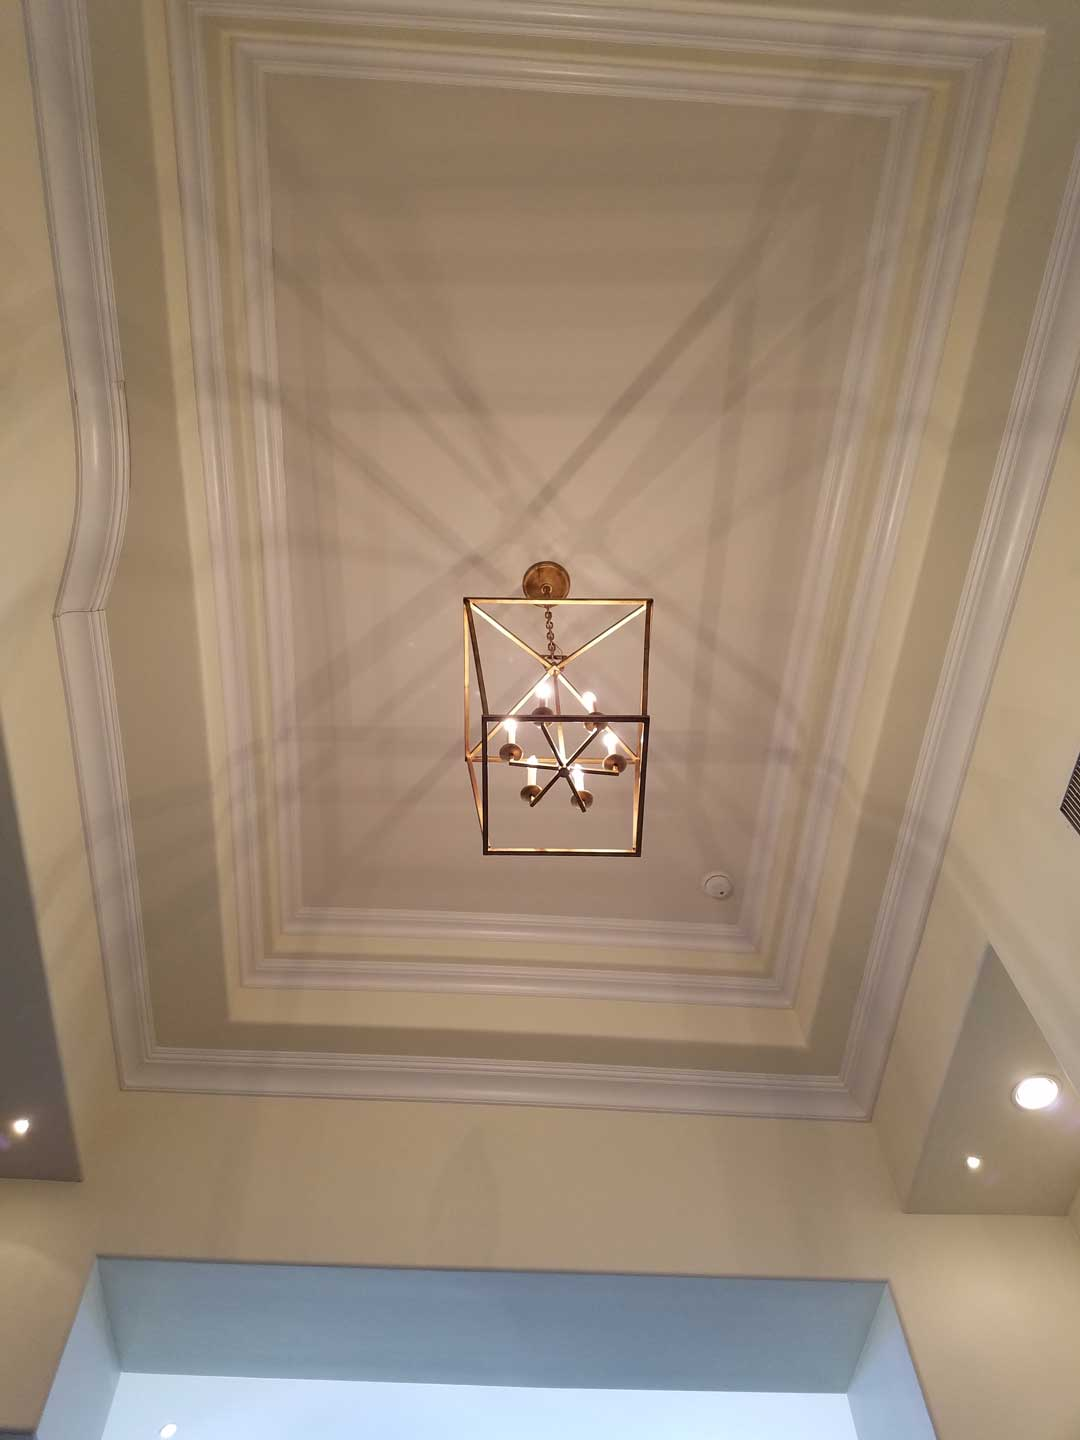 entry-light-ceiling-molds-interesting-shadow-casting